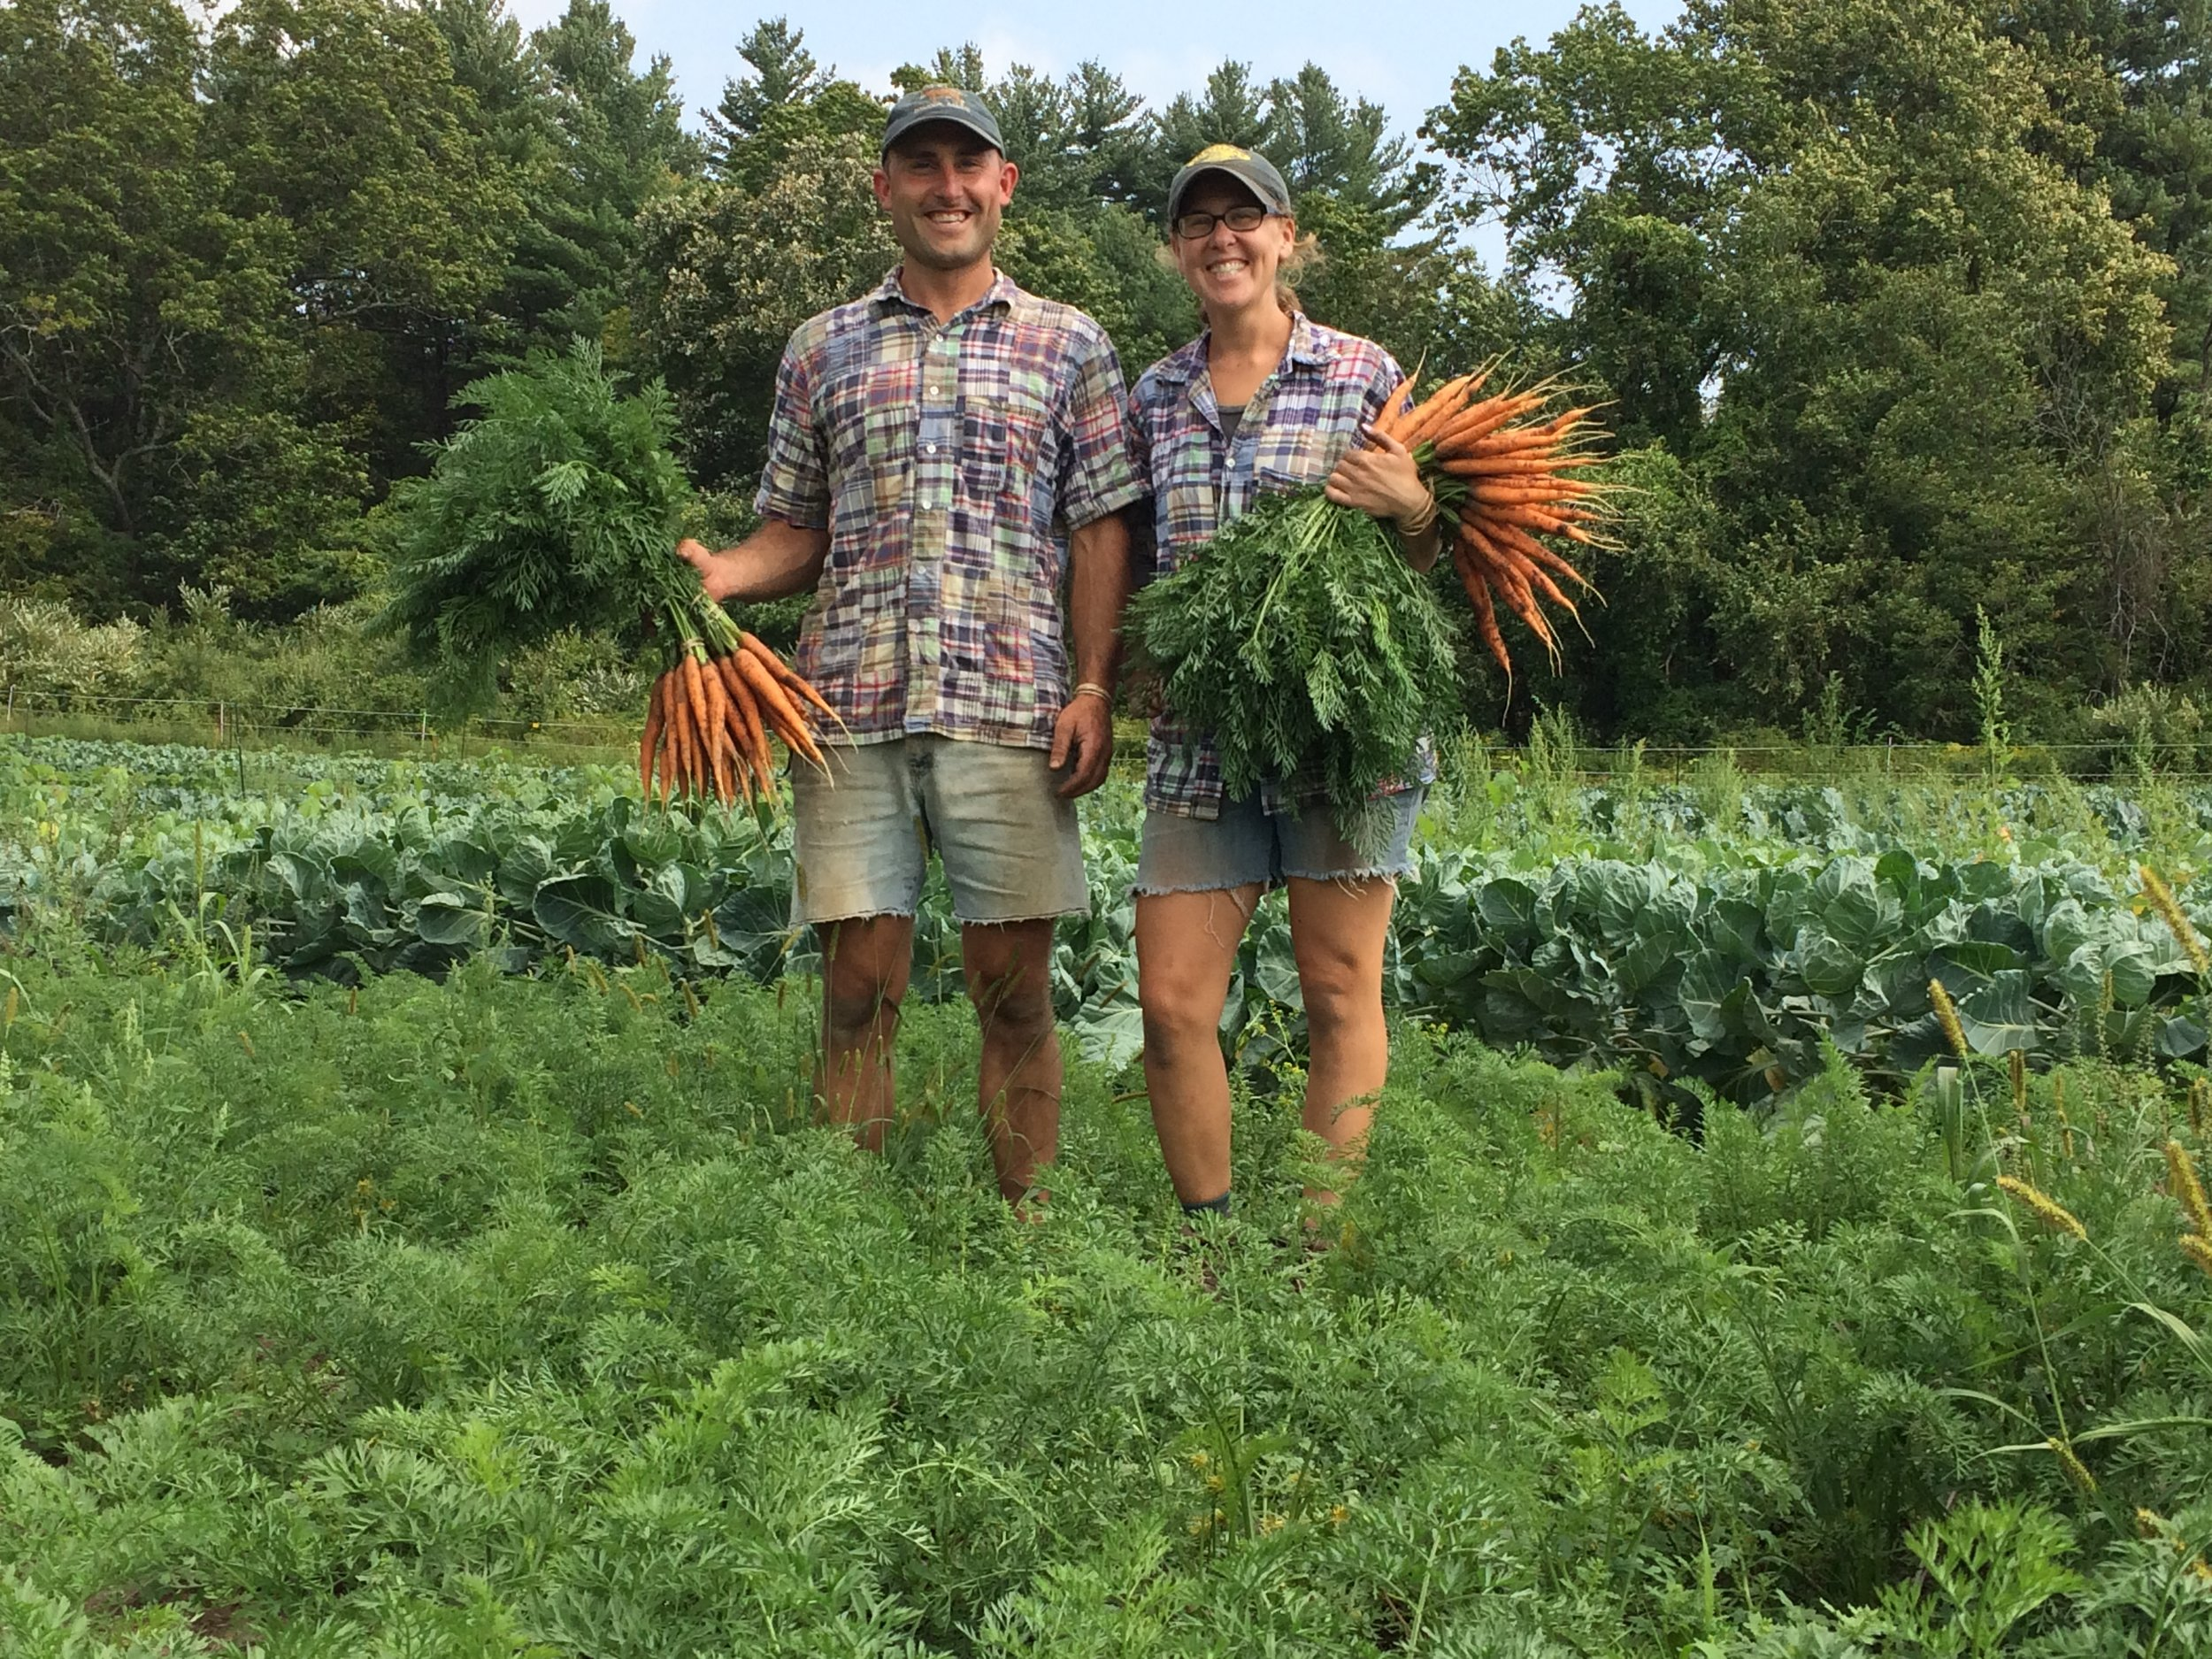 Shaun's birthday carrot harvest.Doesn't everyone celebrate by wearing matching outfits with their co-workers?